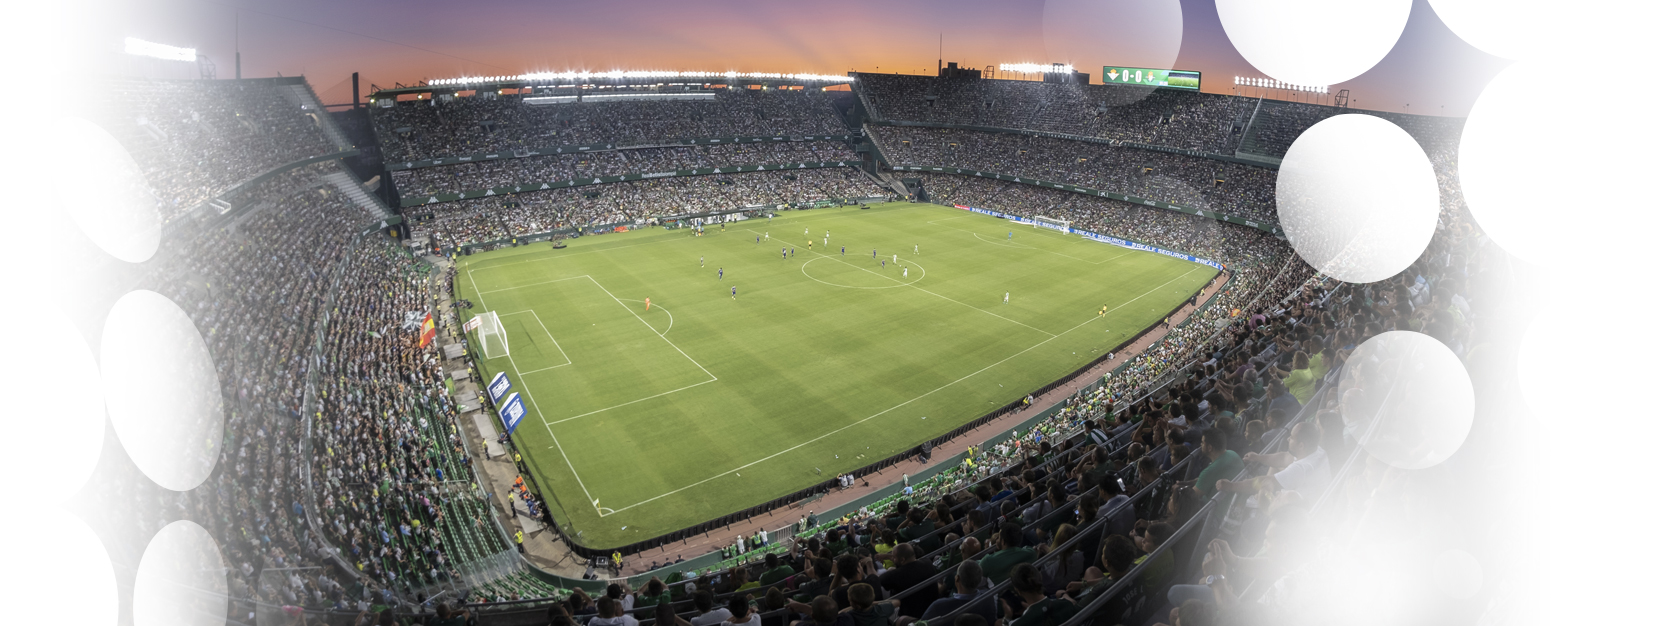 Master in Management: Sports Business Real Betis